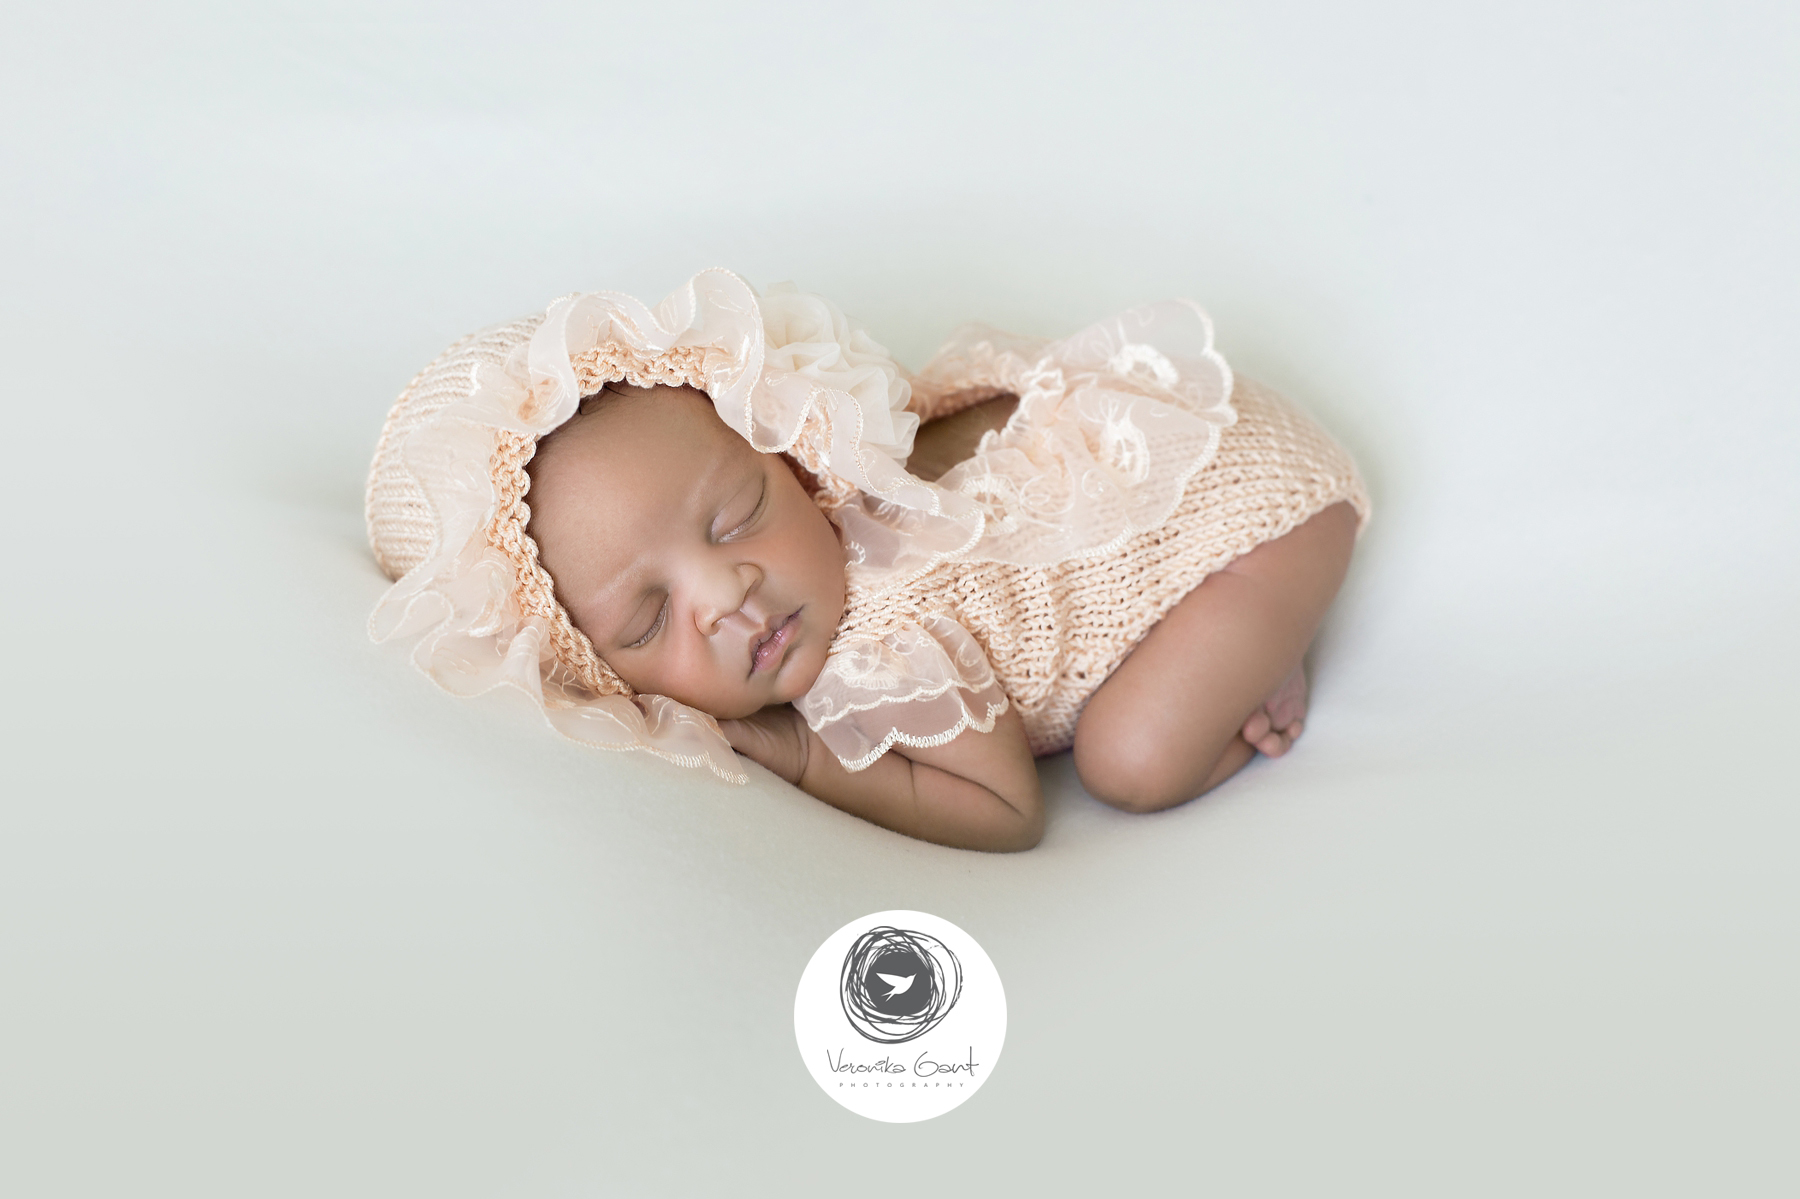 Signature-Newborn-Session-AW-02